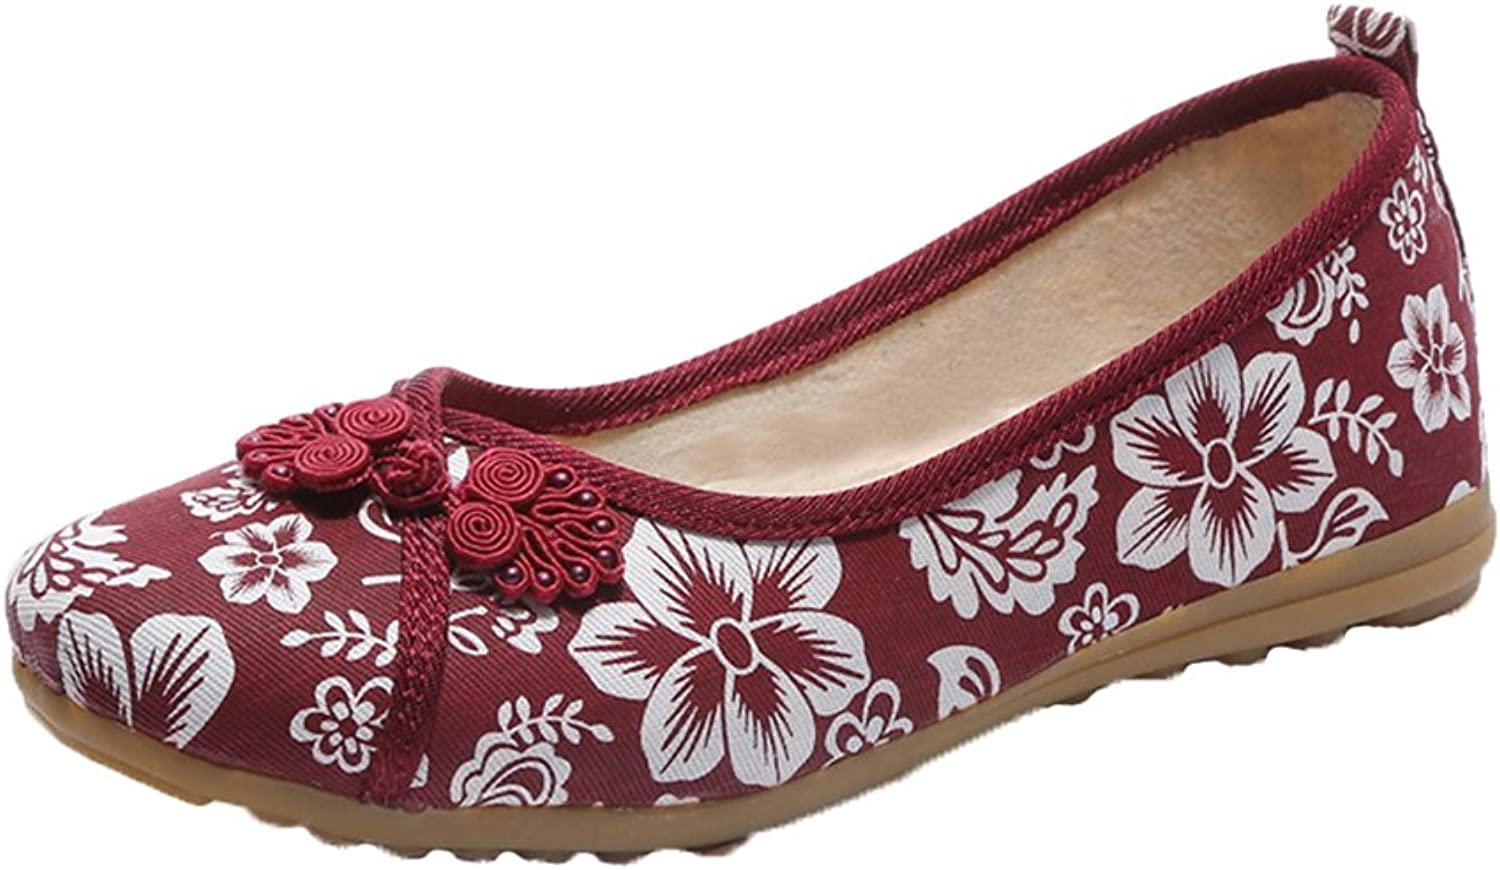 Kyle Walsh Pa Women Folk Style Embroidery Round Toe Flat shoes